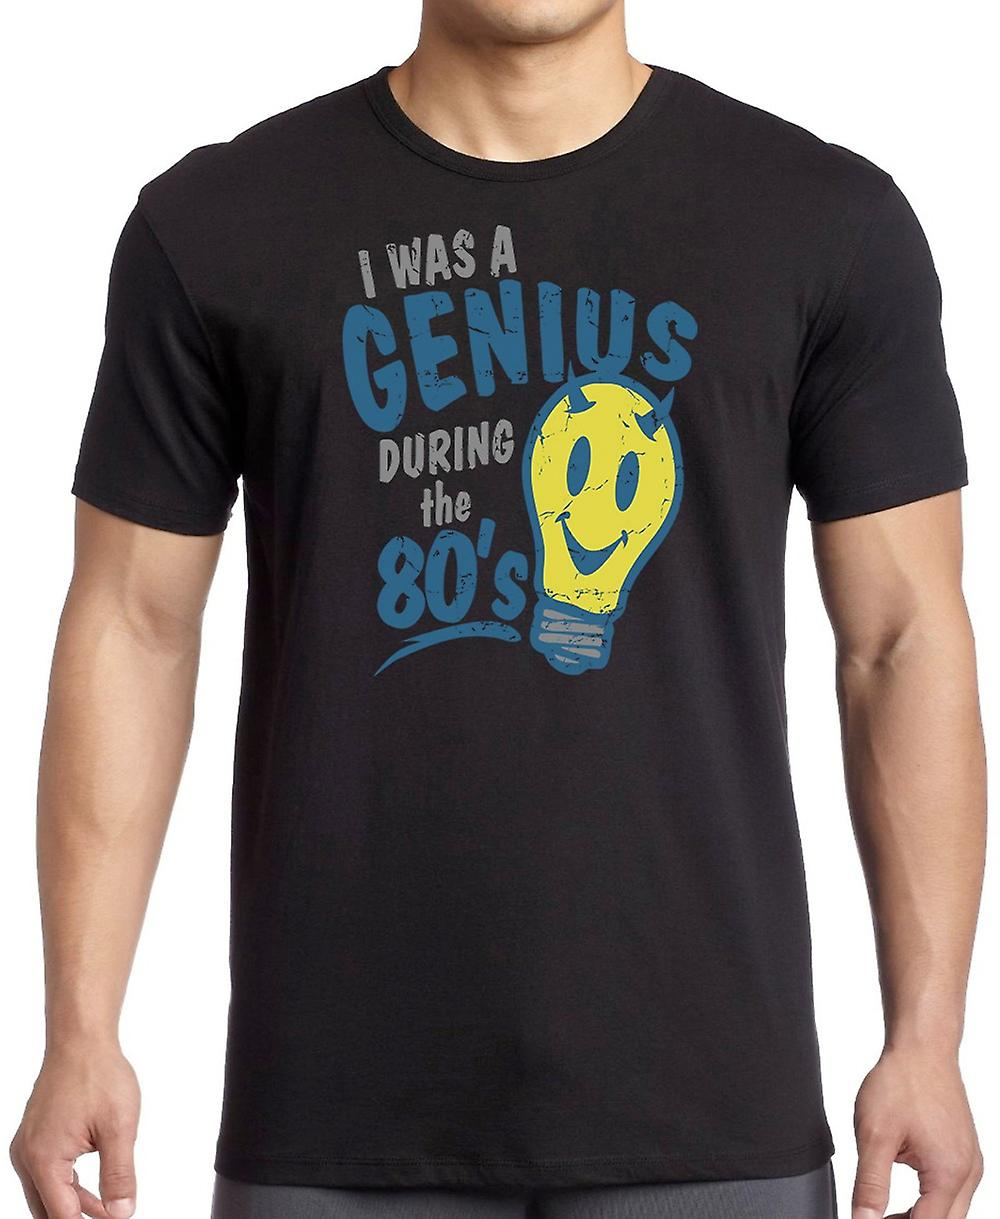 I Was A Genius During The 80s - Funny T Shirt